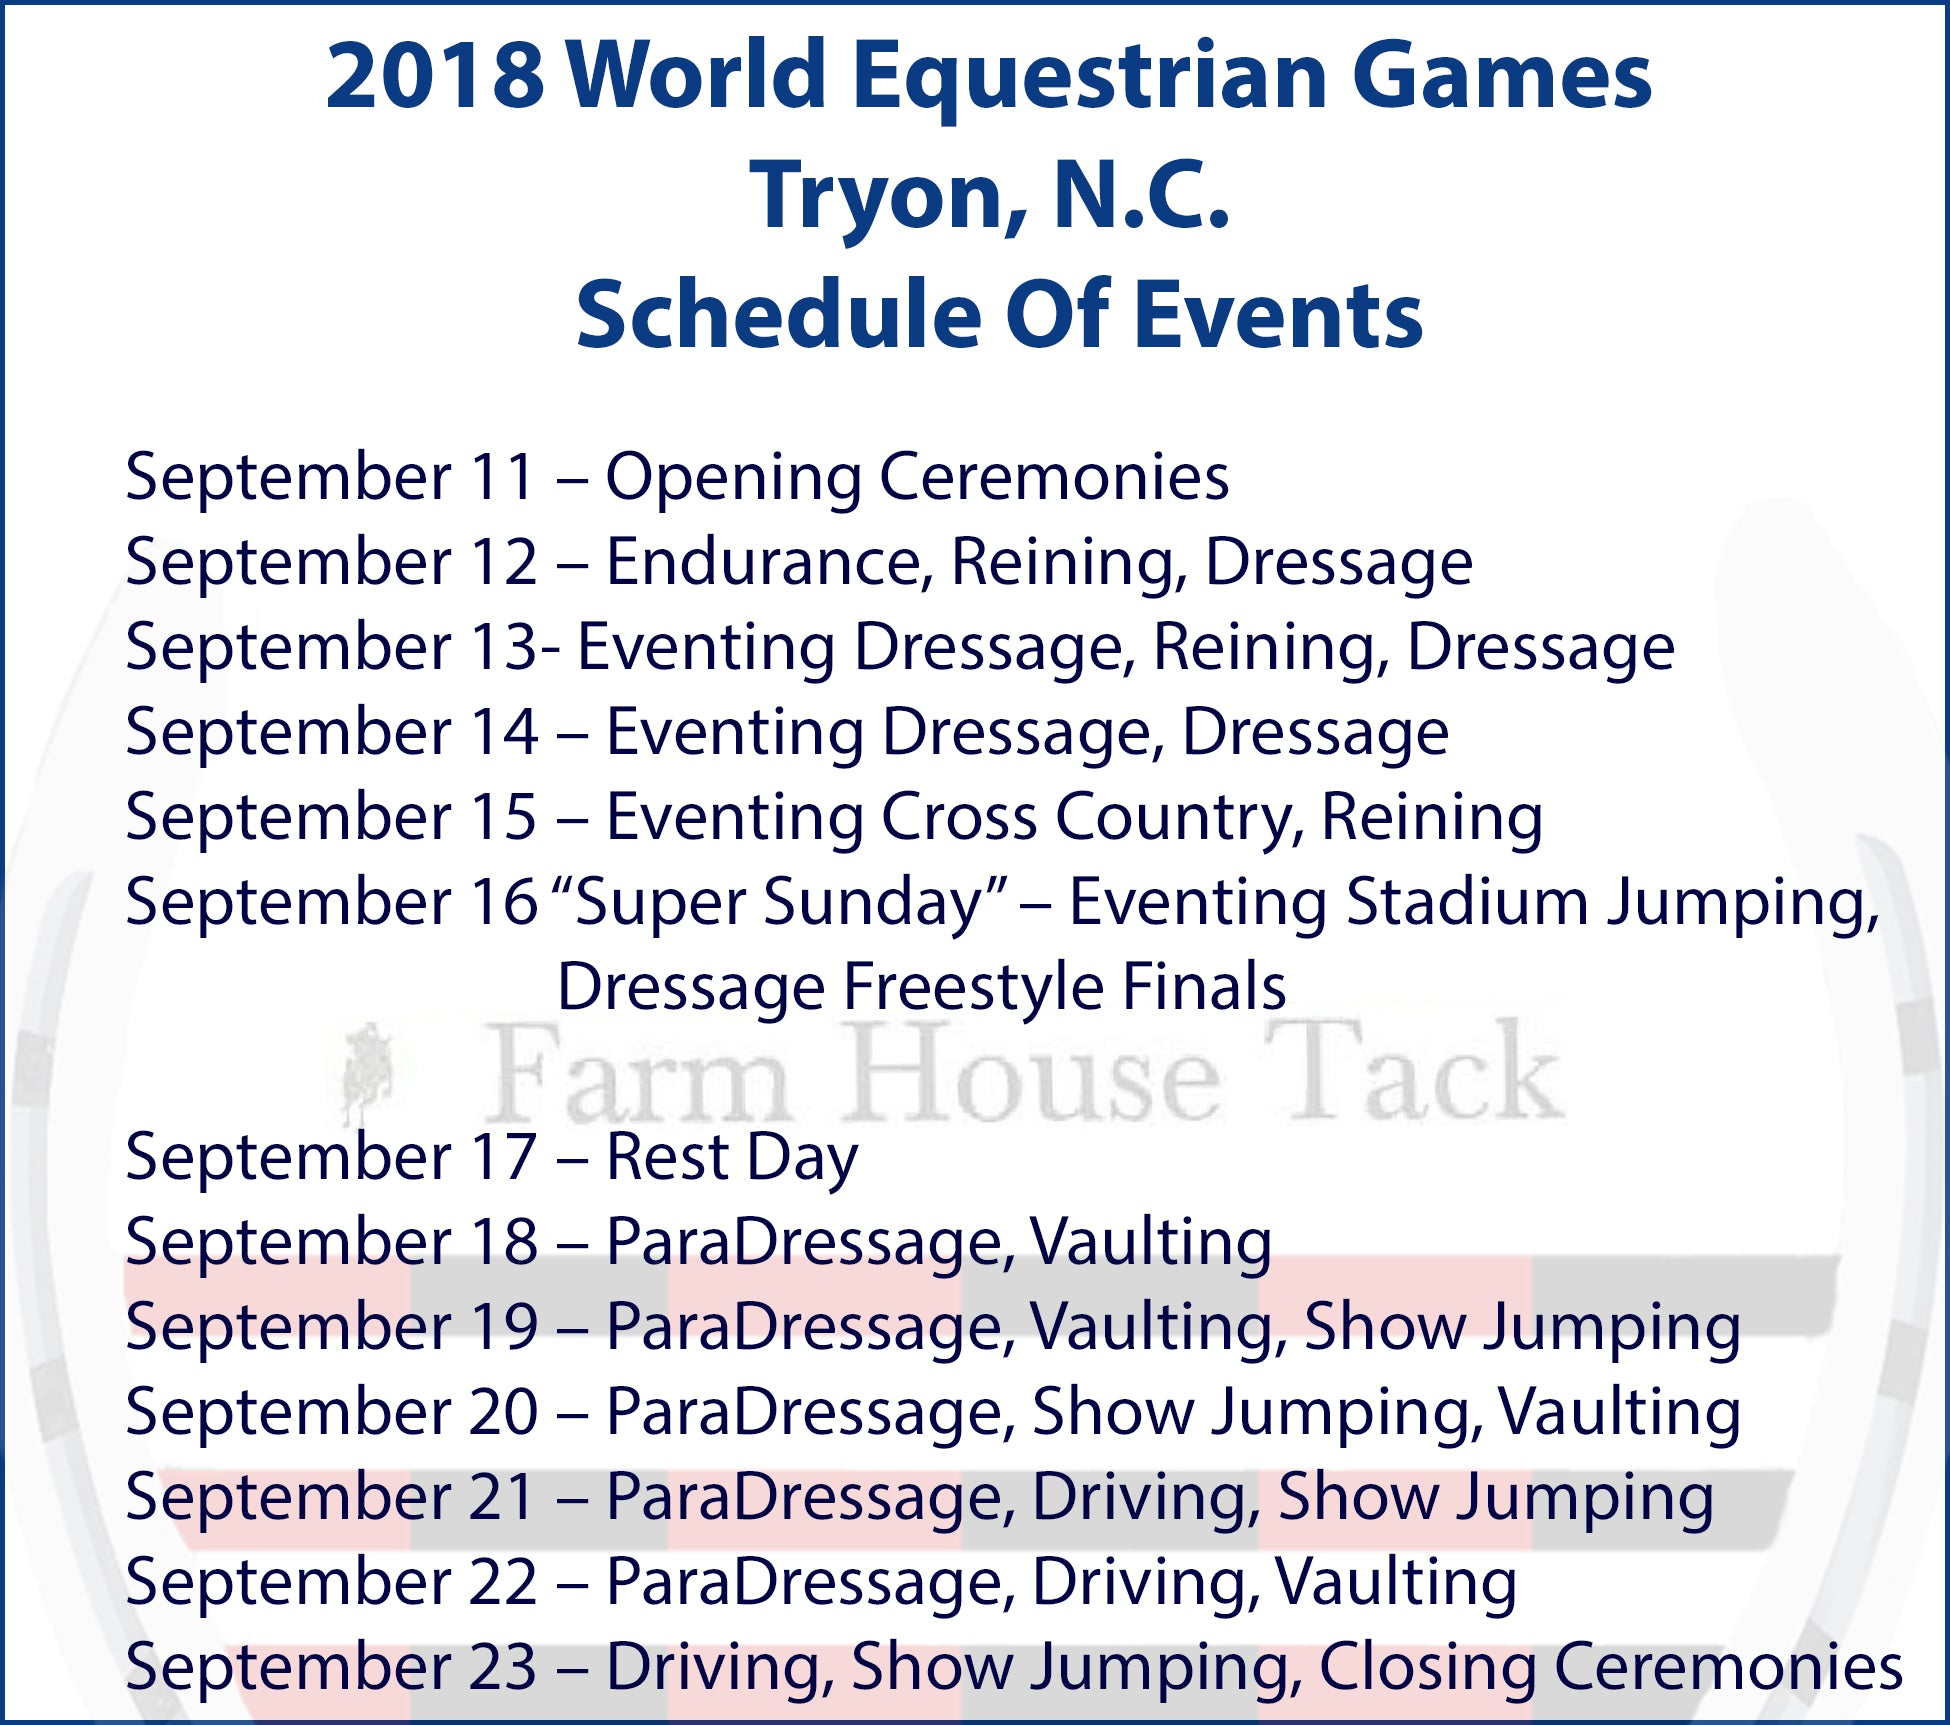 Official Schedule For 2018 World Equestrian Games - Tryon N.C.